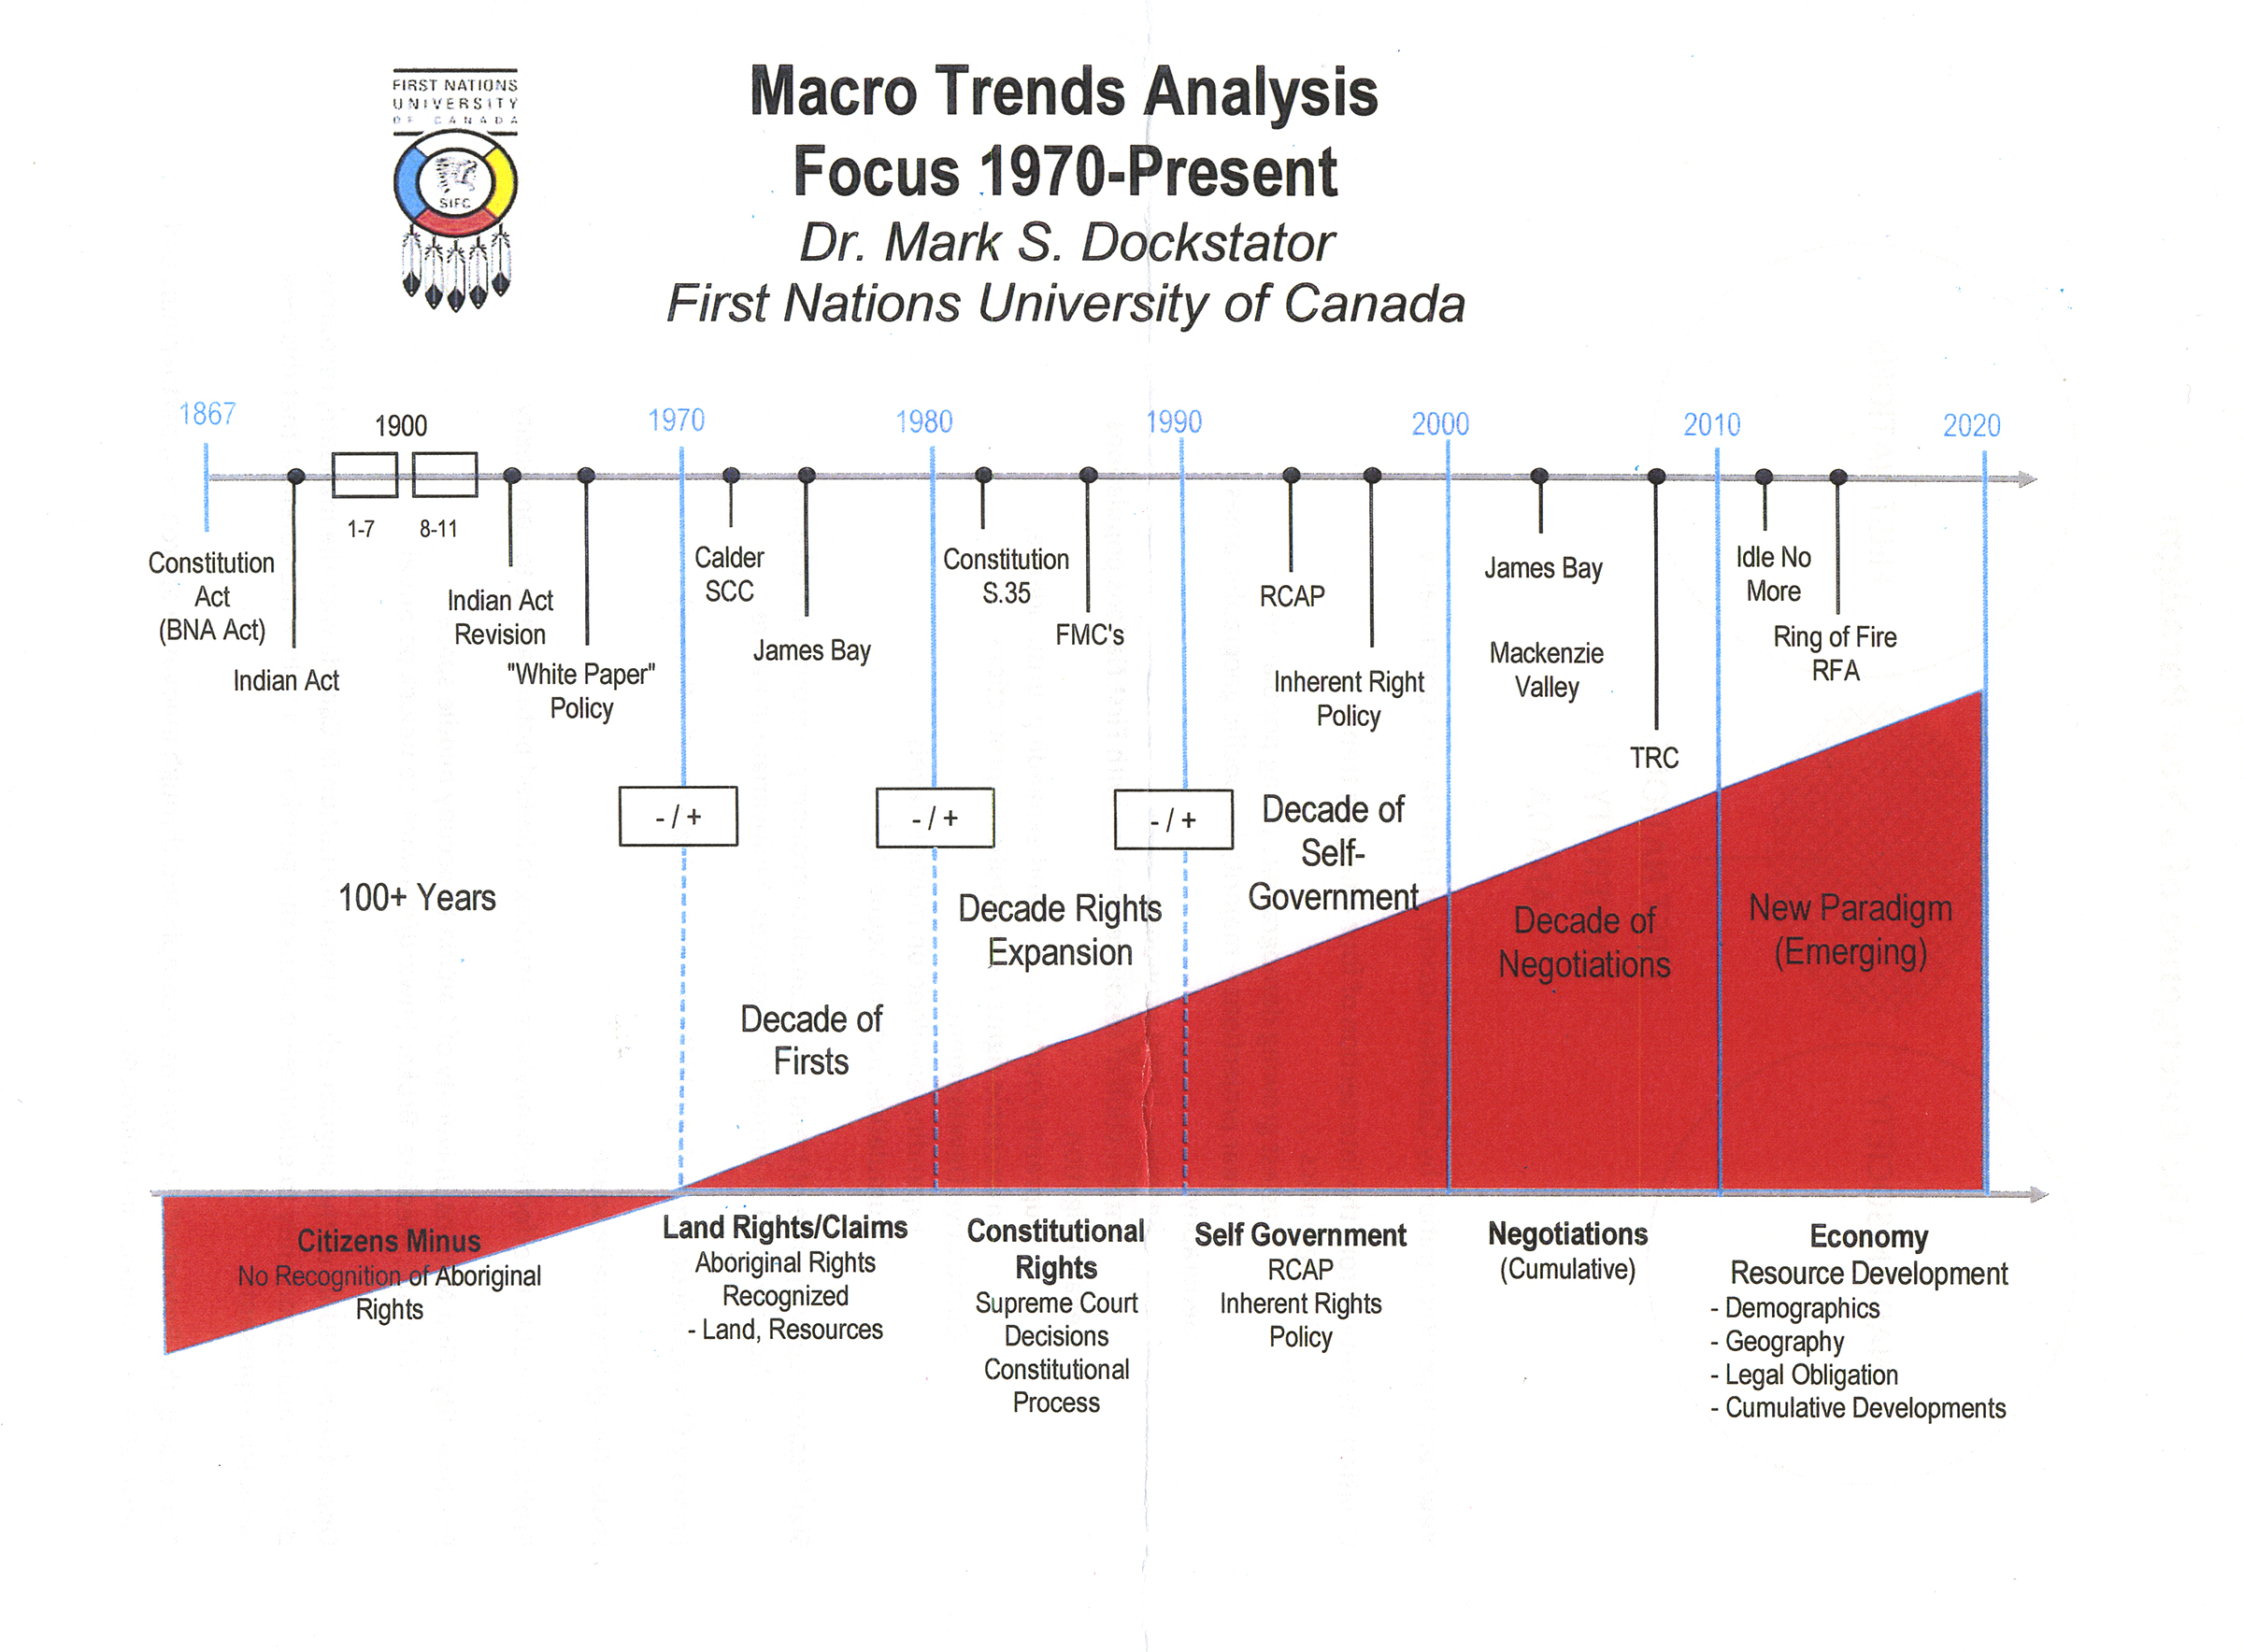 Dr. Dockstator created this chart to illustrate how the relationship between First Nations people and Canadian society has evolved over the years.